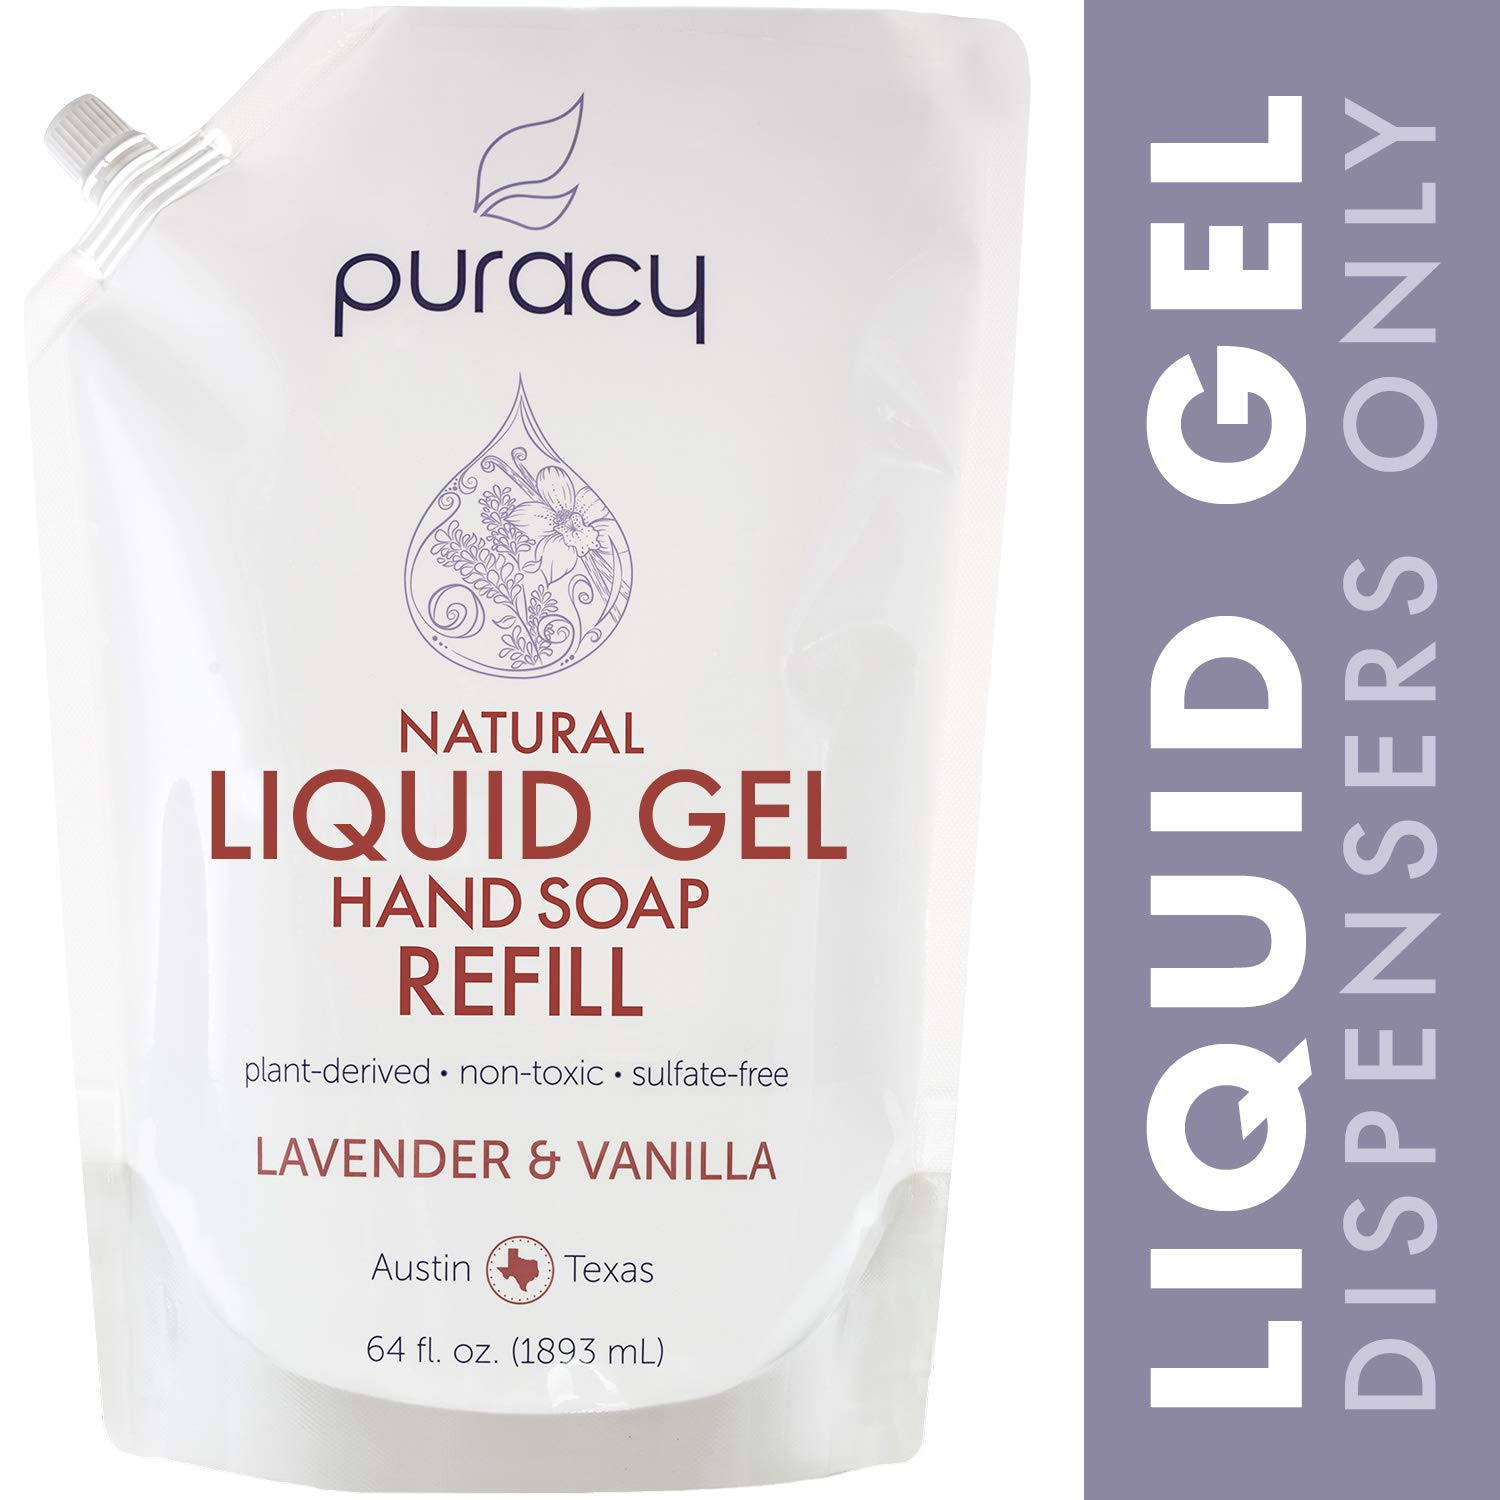 Puracy Natural Liquid Hand Soap Refill, Sulfate-Free Gel Hand Wash, Lavender & Vanilla, 64 Ounce by Puracy (Image #1)